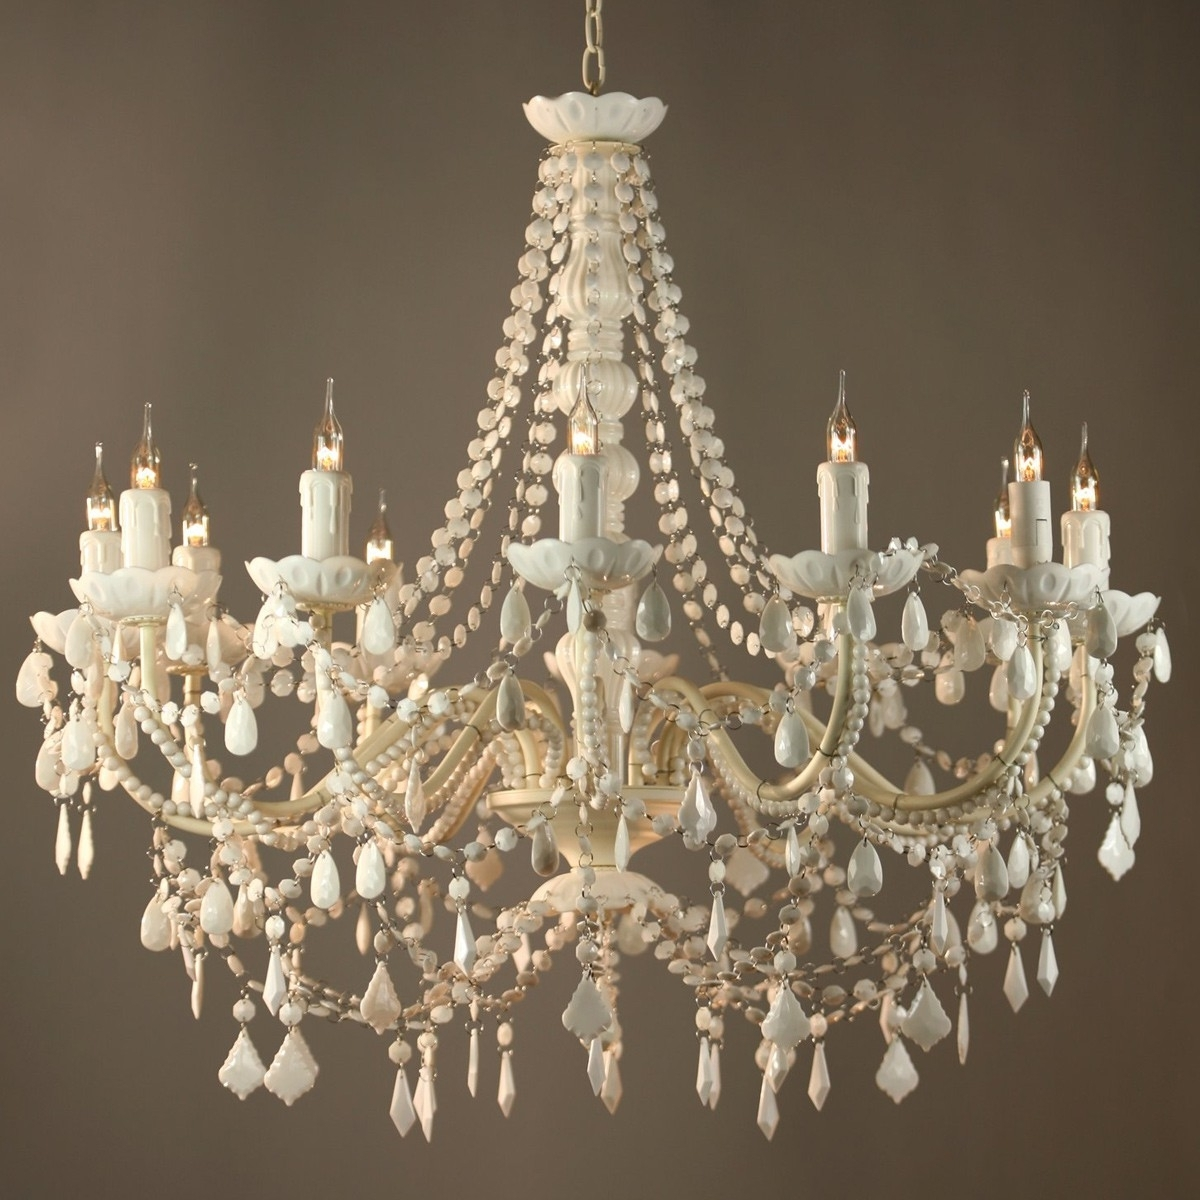 Vintage Style Chandeliers Intended For Trendy Chandeliers Vintage (Gallery 2 of 15)